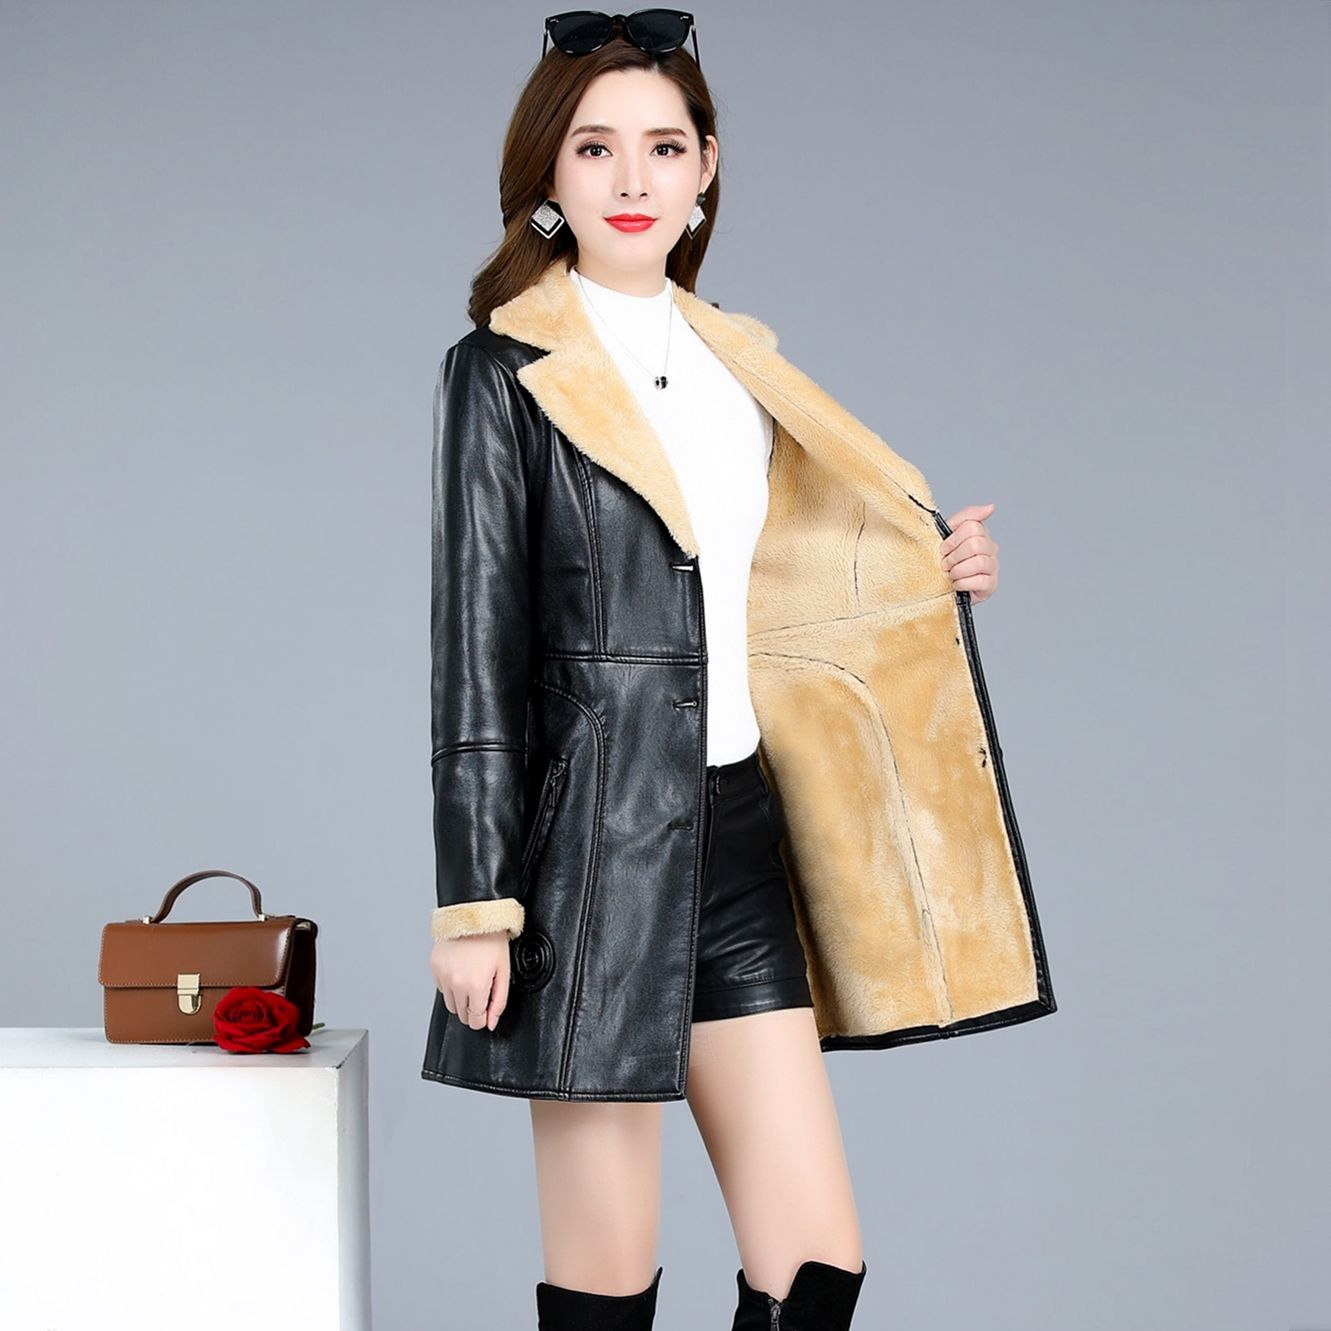 DUOFAN Women Fashion Thick Warm Winter Fur Faux Leather Jacket Mid-length Coat Vintage Long Sleeve Female Outerwear Chic Tops enlarge